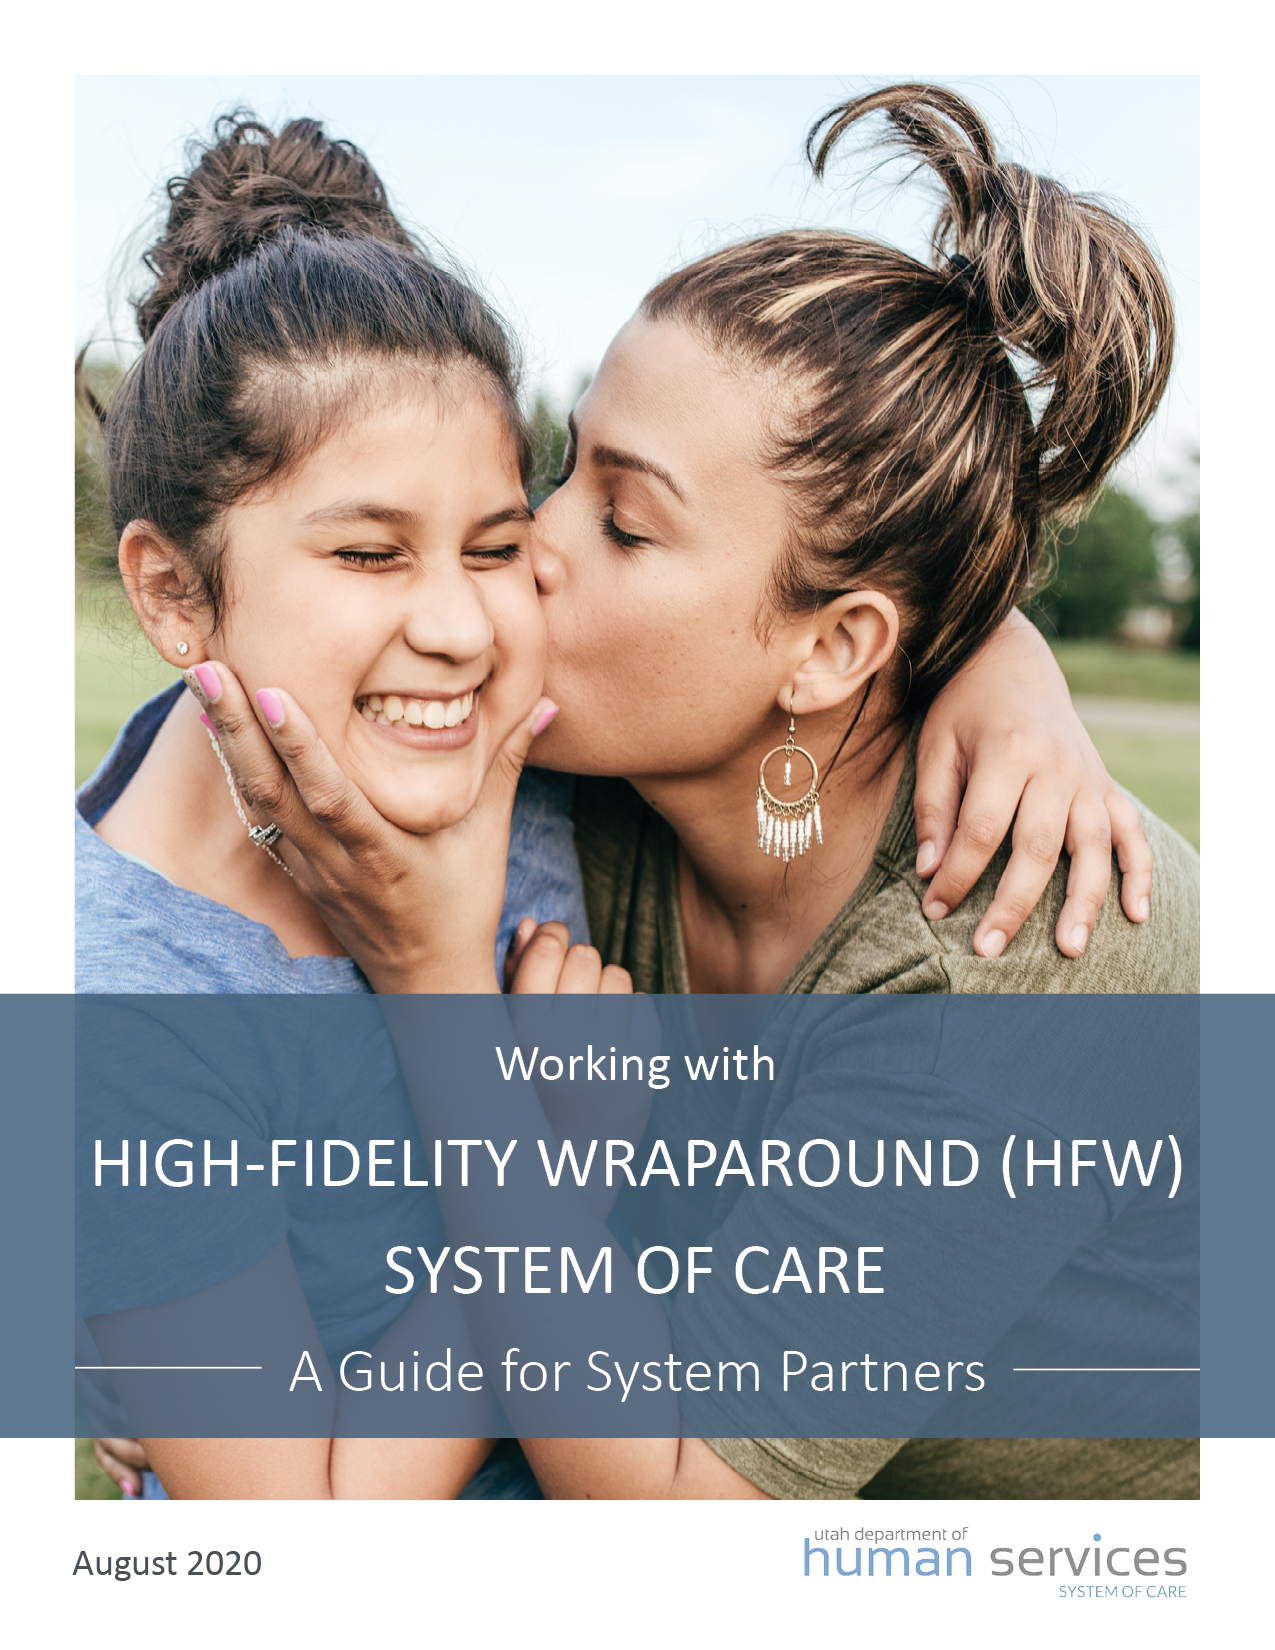 The Cover of the High-Fidelity Wraparound (HFW) System of Care Booklet, featuring a mother giving her daughter a kiss.